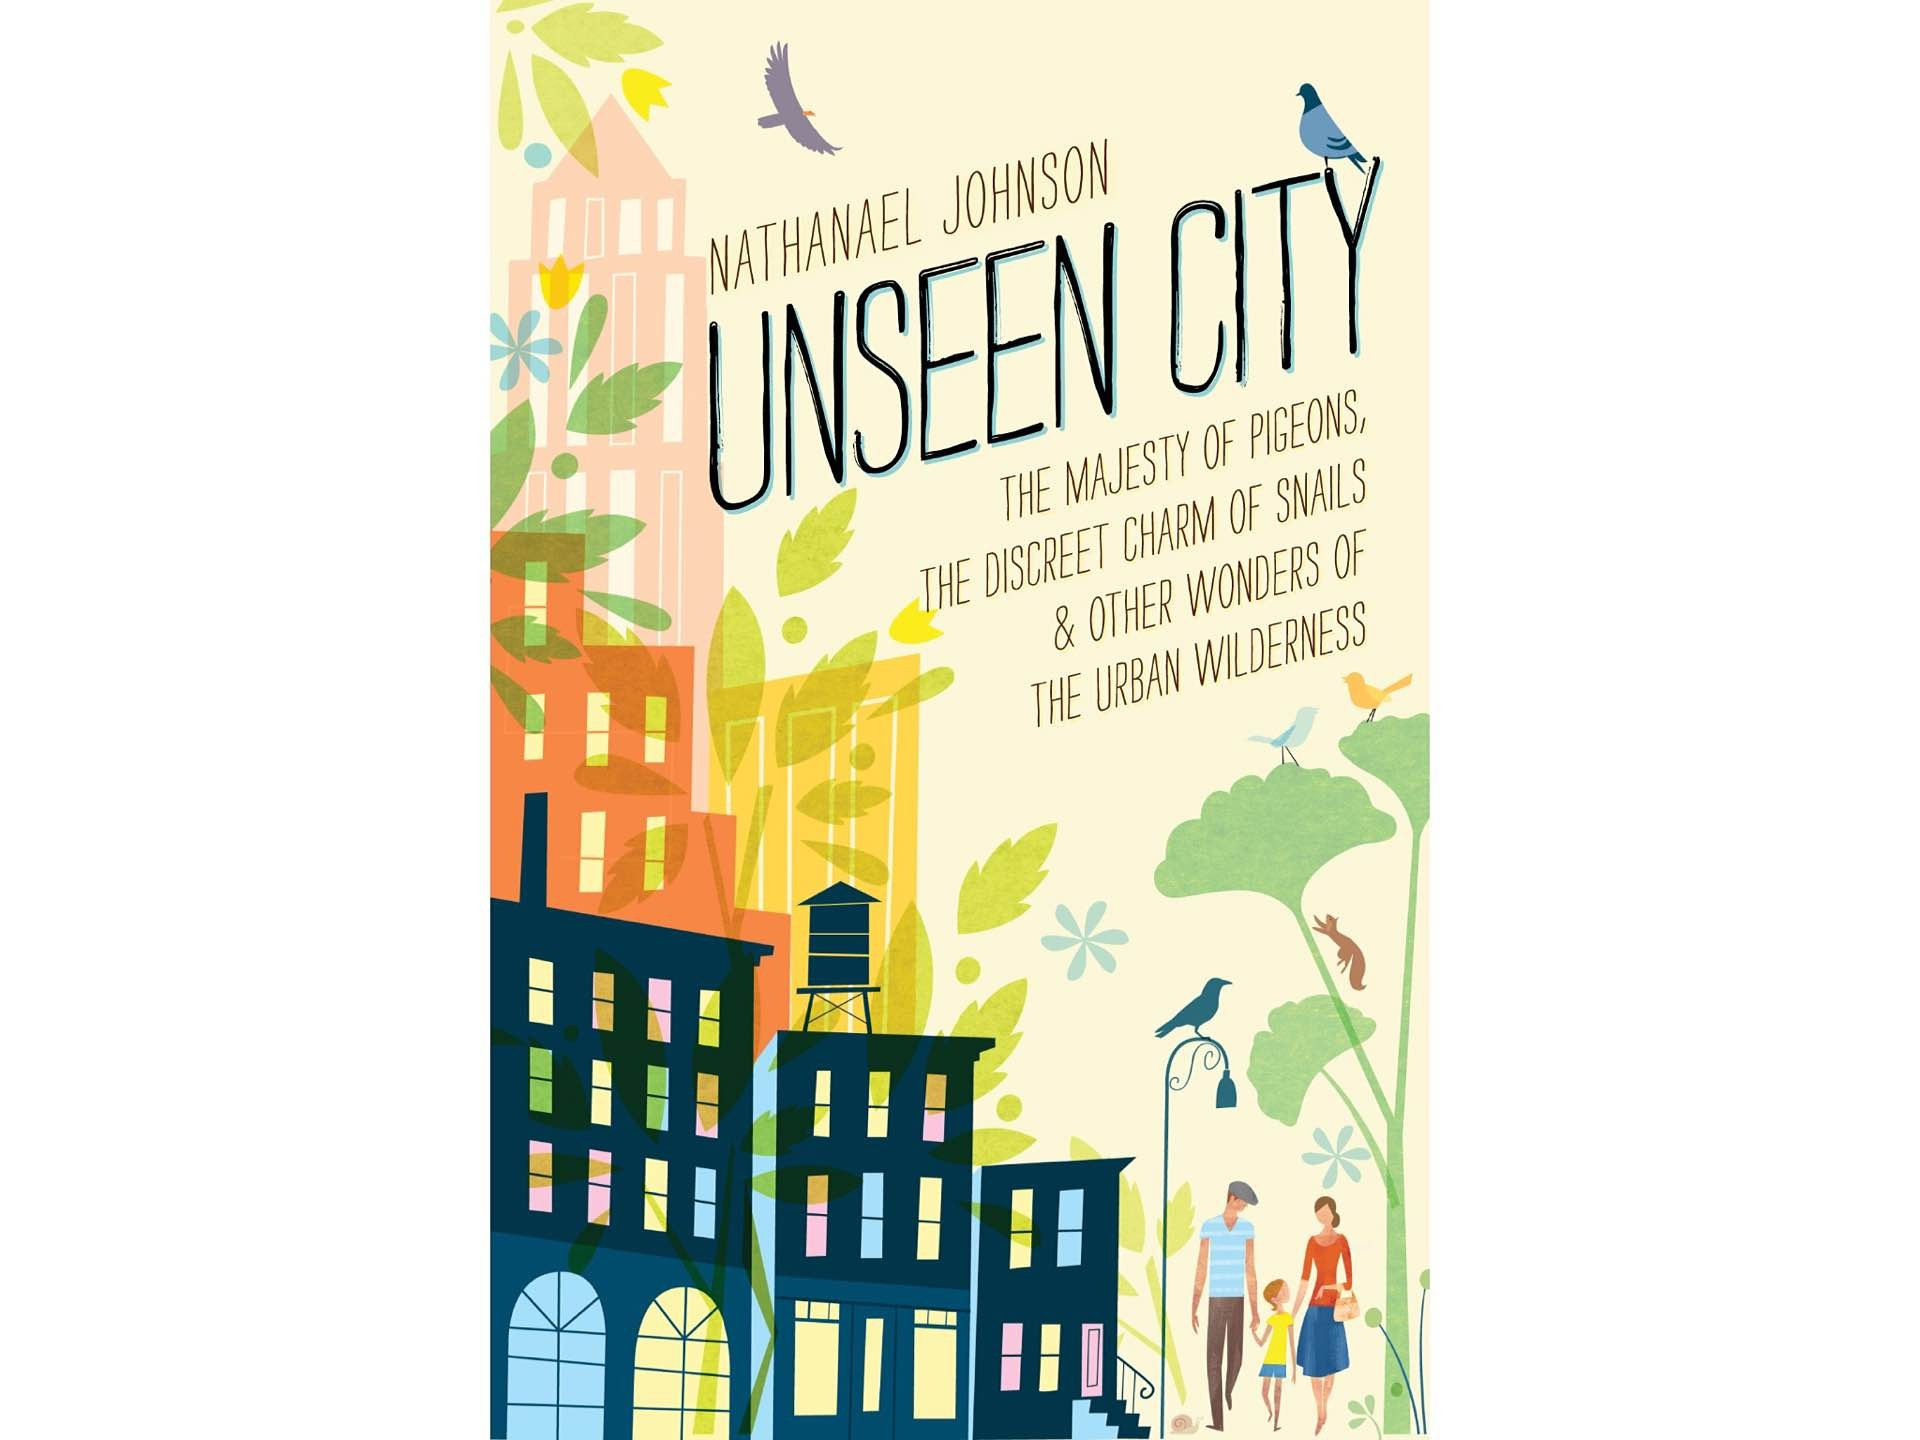 Unseen City by Nathanael Johnson.